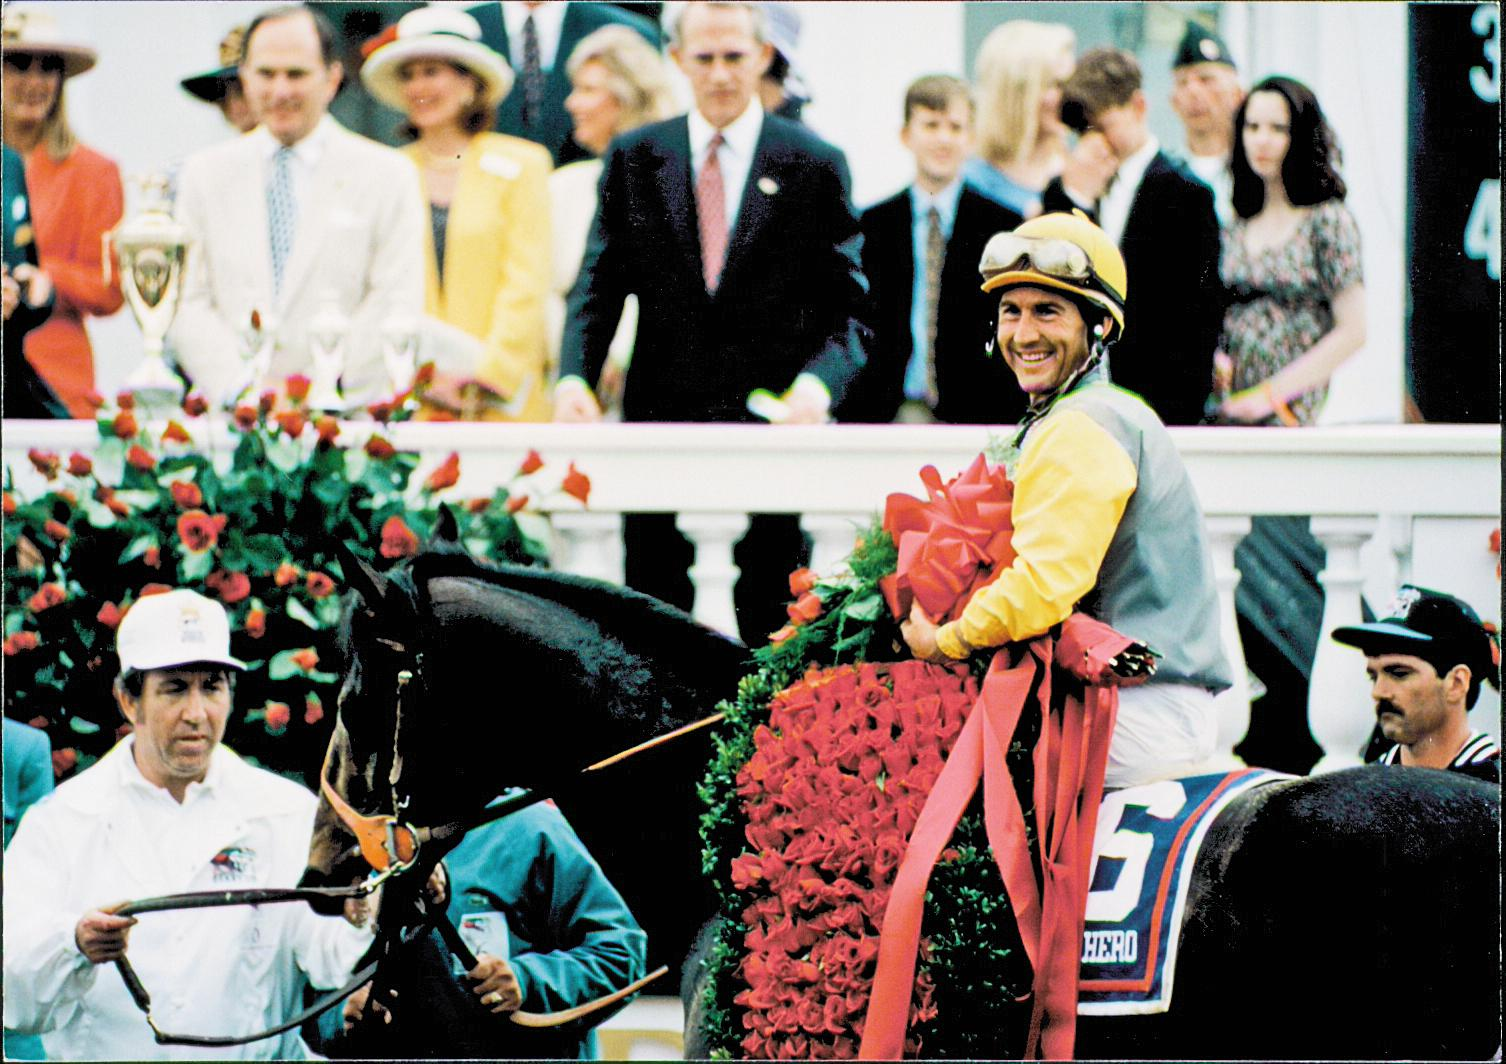 Bailey after winning the Kentucky Derby aboard Sea Hero.